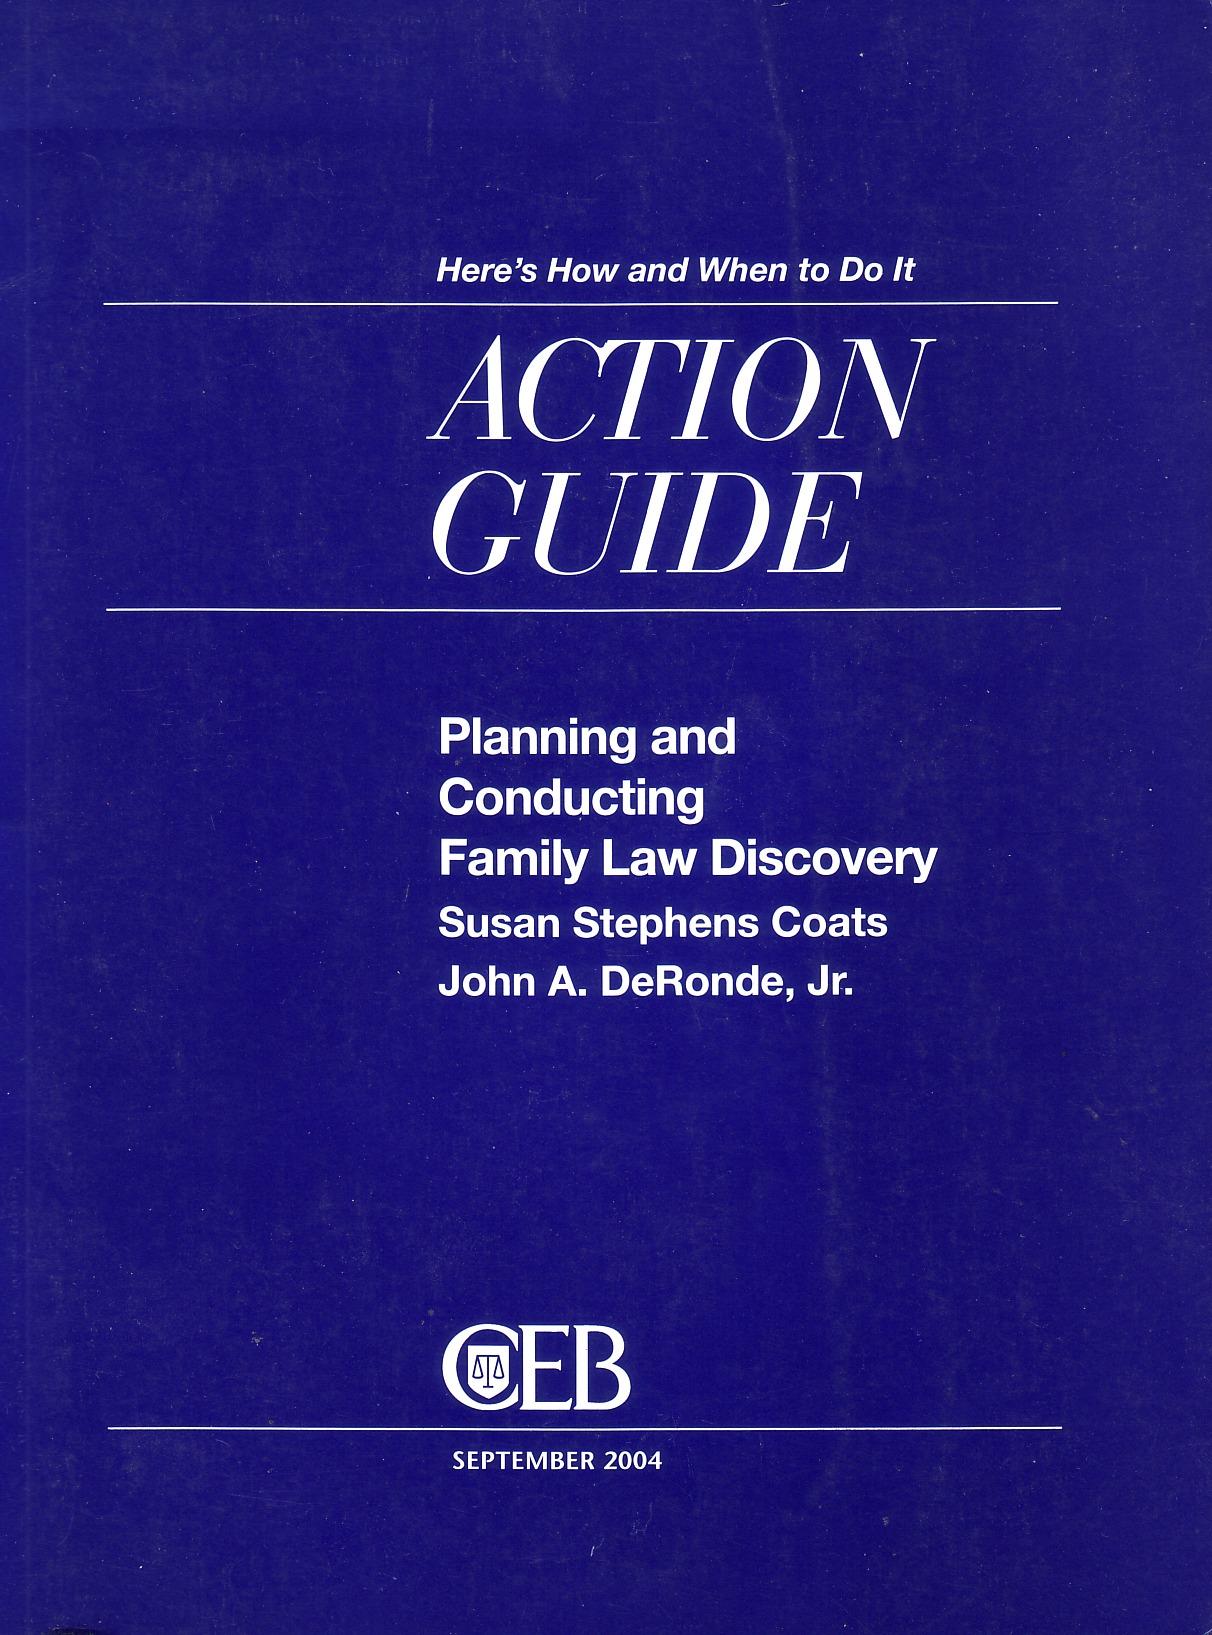 Planning and Conducting Family Law Discovery